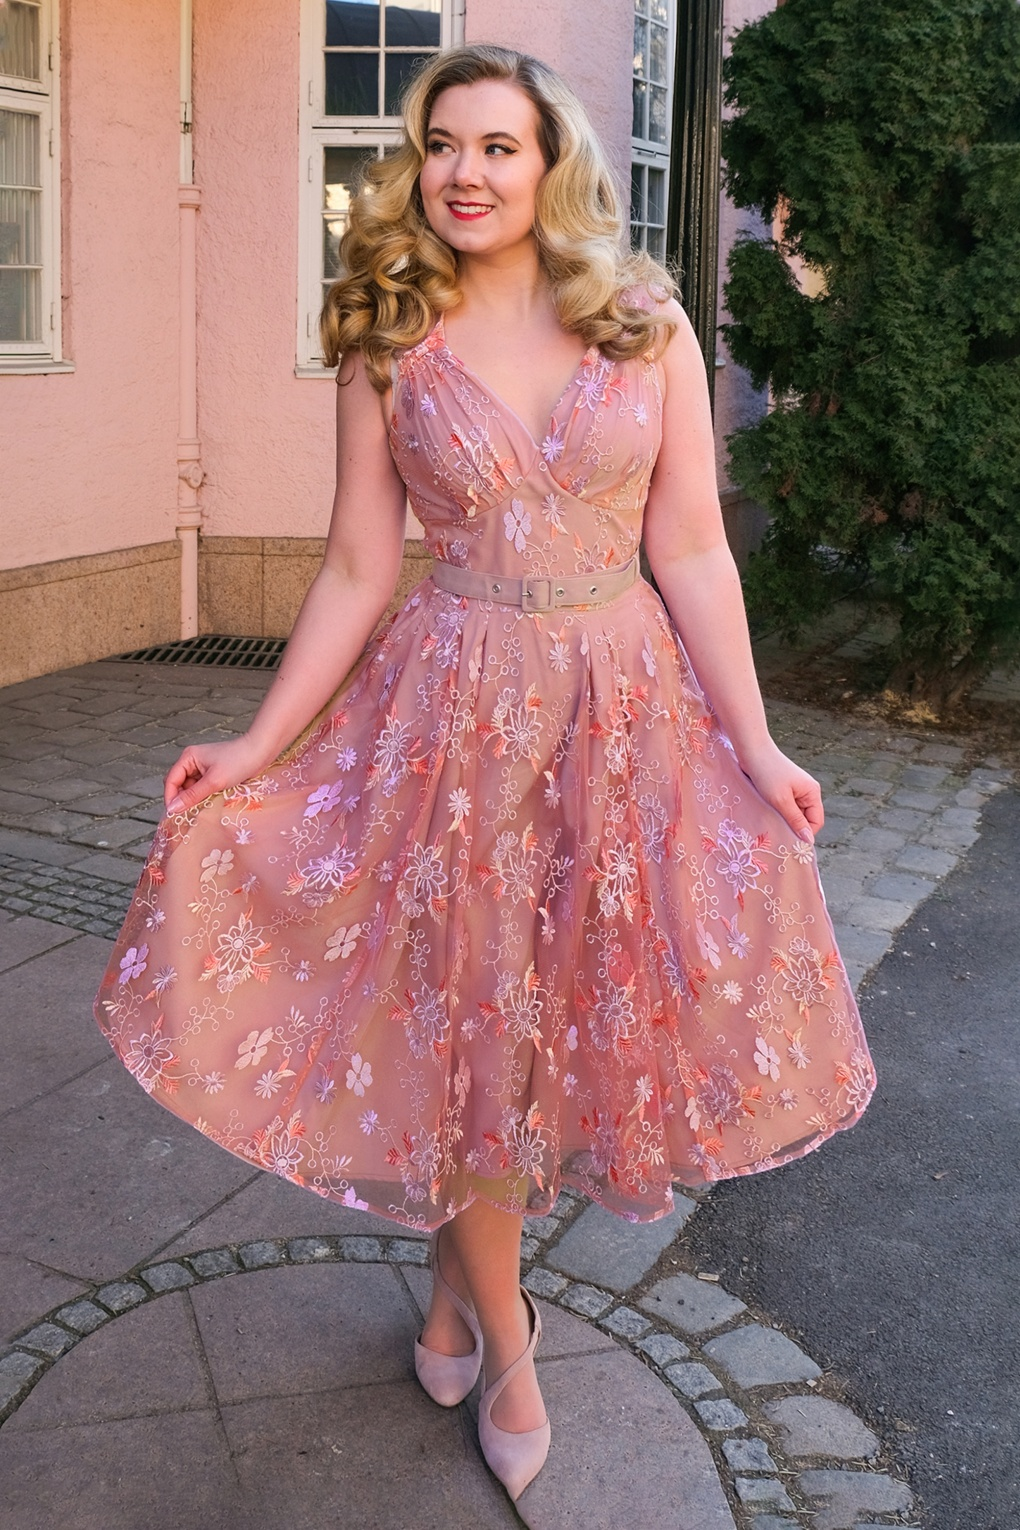 1950s Party Dresses & Prom Dresses for Sale 50s Barite Helio Summer Swing Dress in Pink £19.95 AT vintagedancer.com